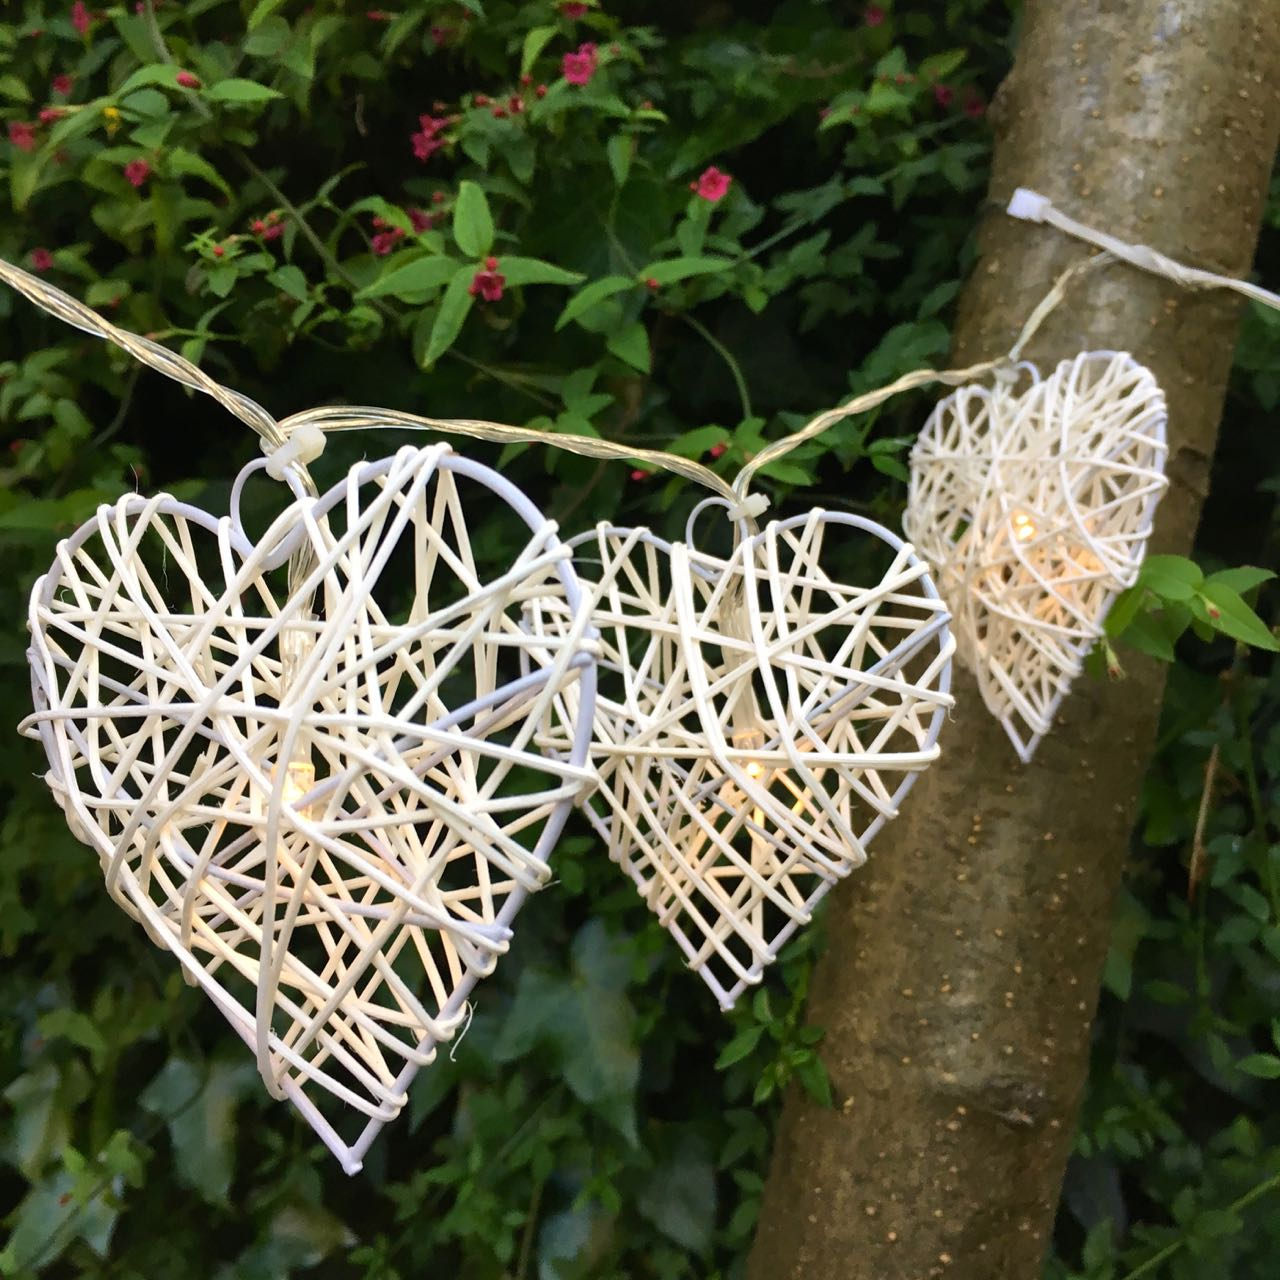 I'm loving the contrast of the white hearts against the bark and background of the ivy